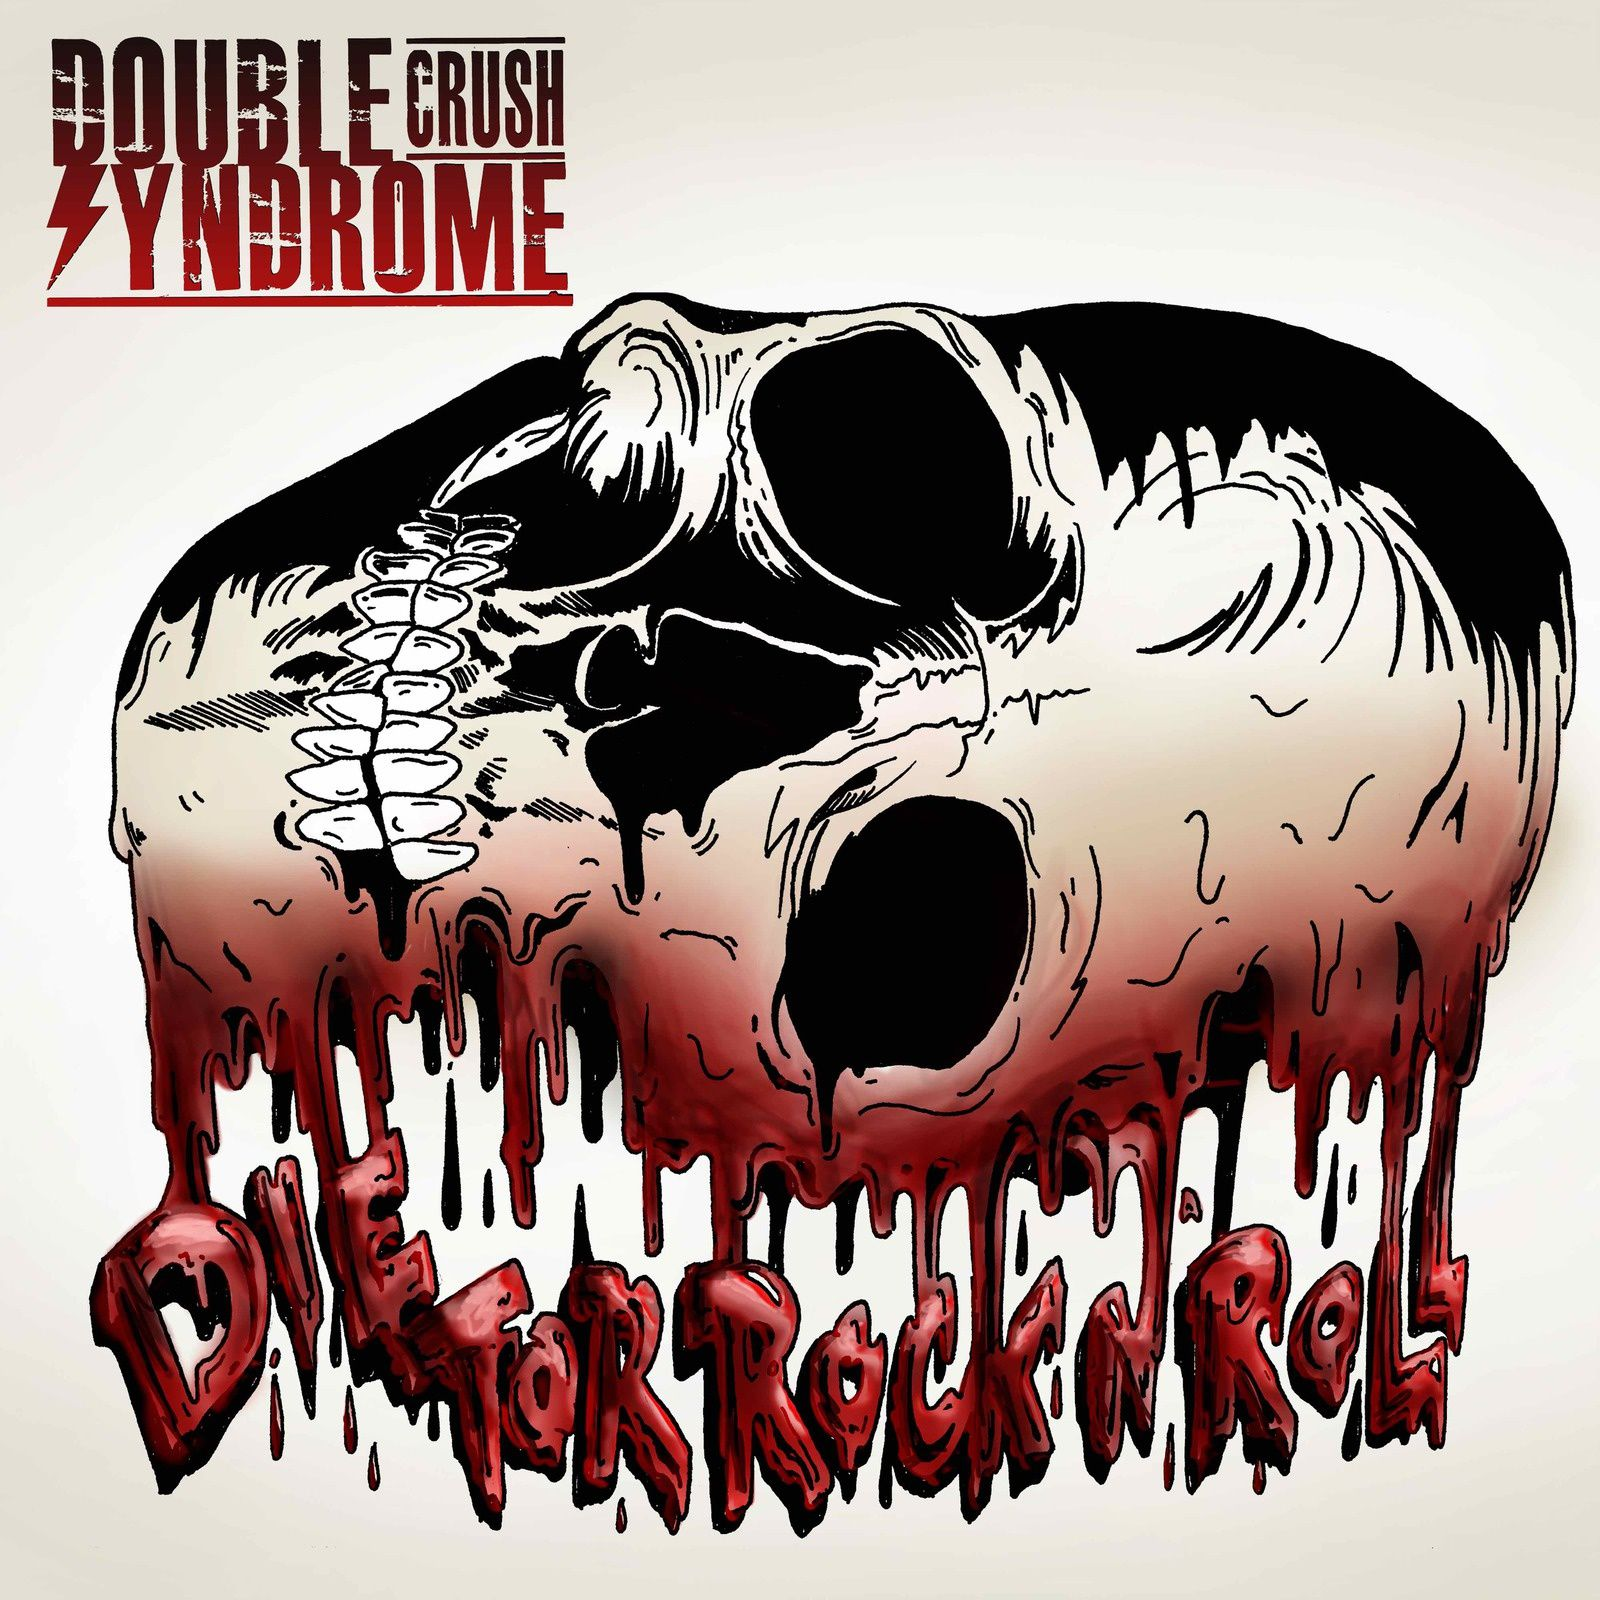 DOUBLE CRASH SYNDROME's new video and tour dates